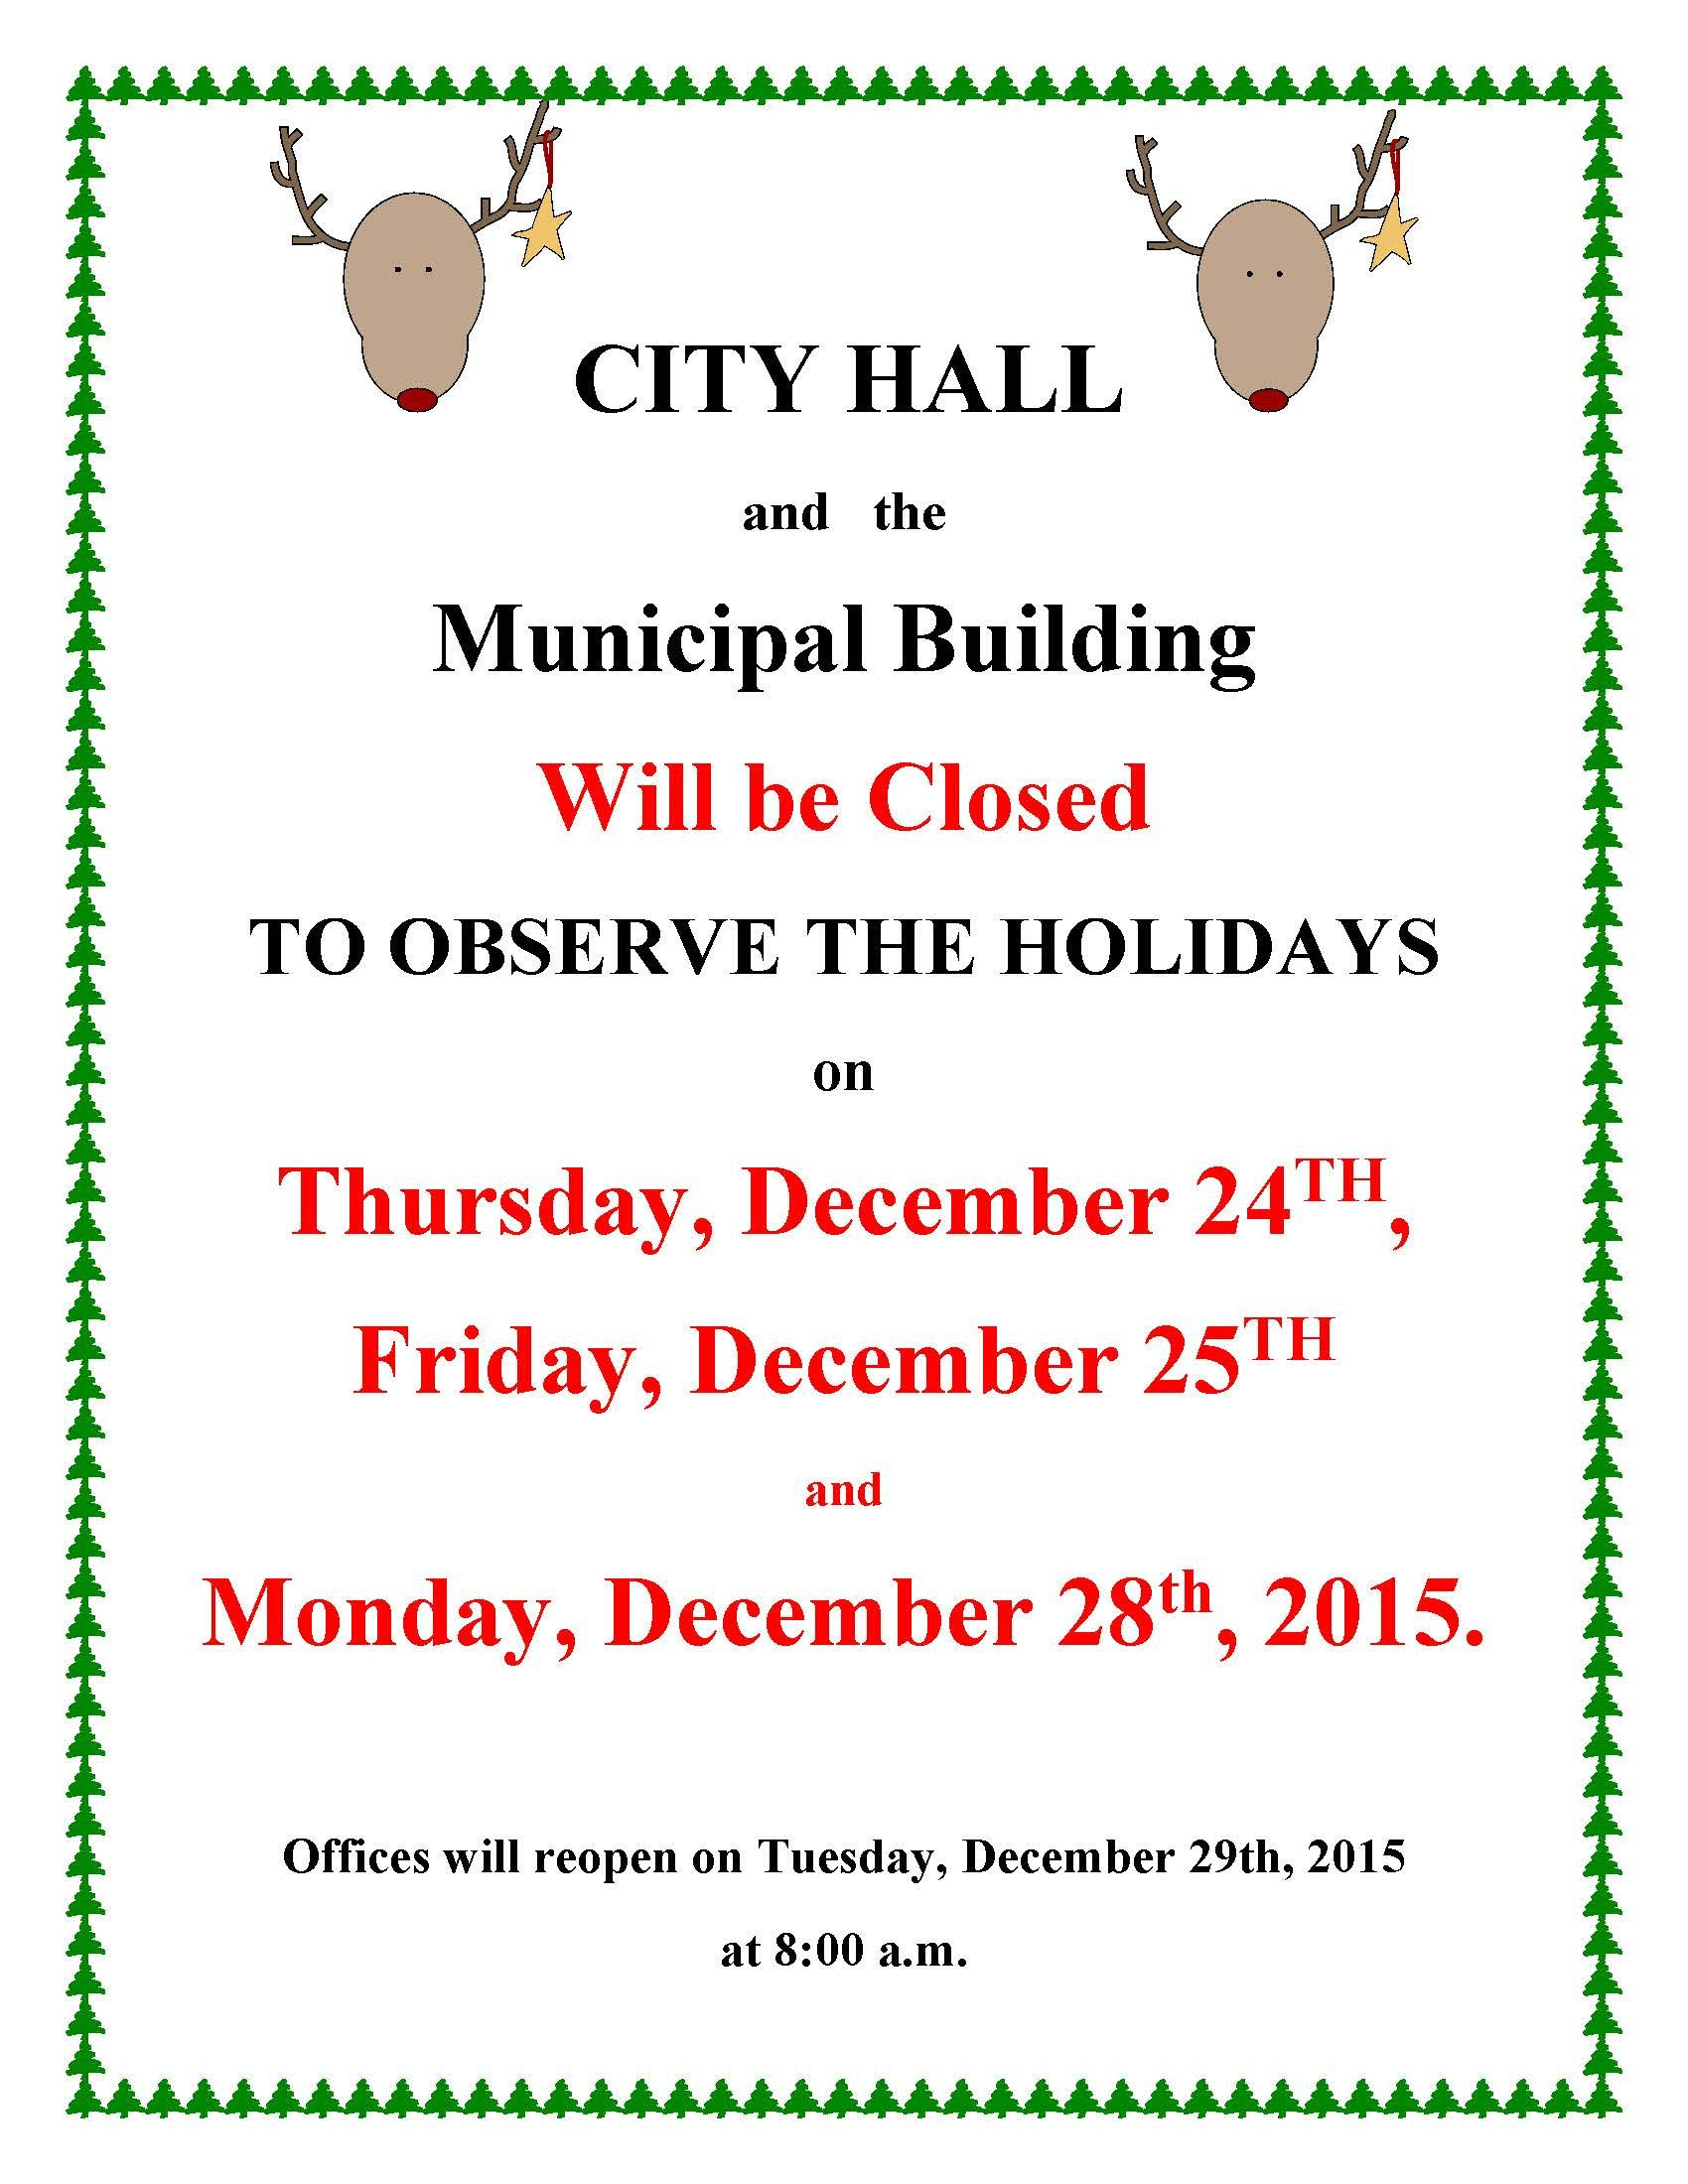 Holiday Closing Notice Template City Fices Closed for Holidays